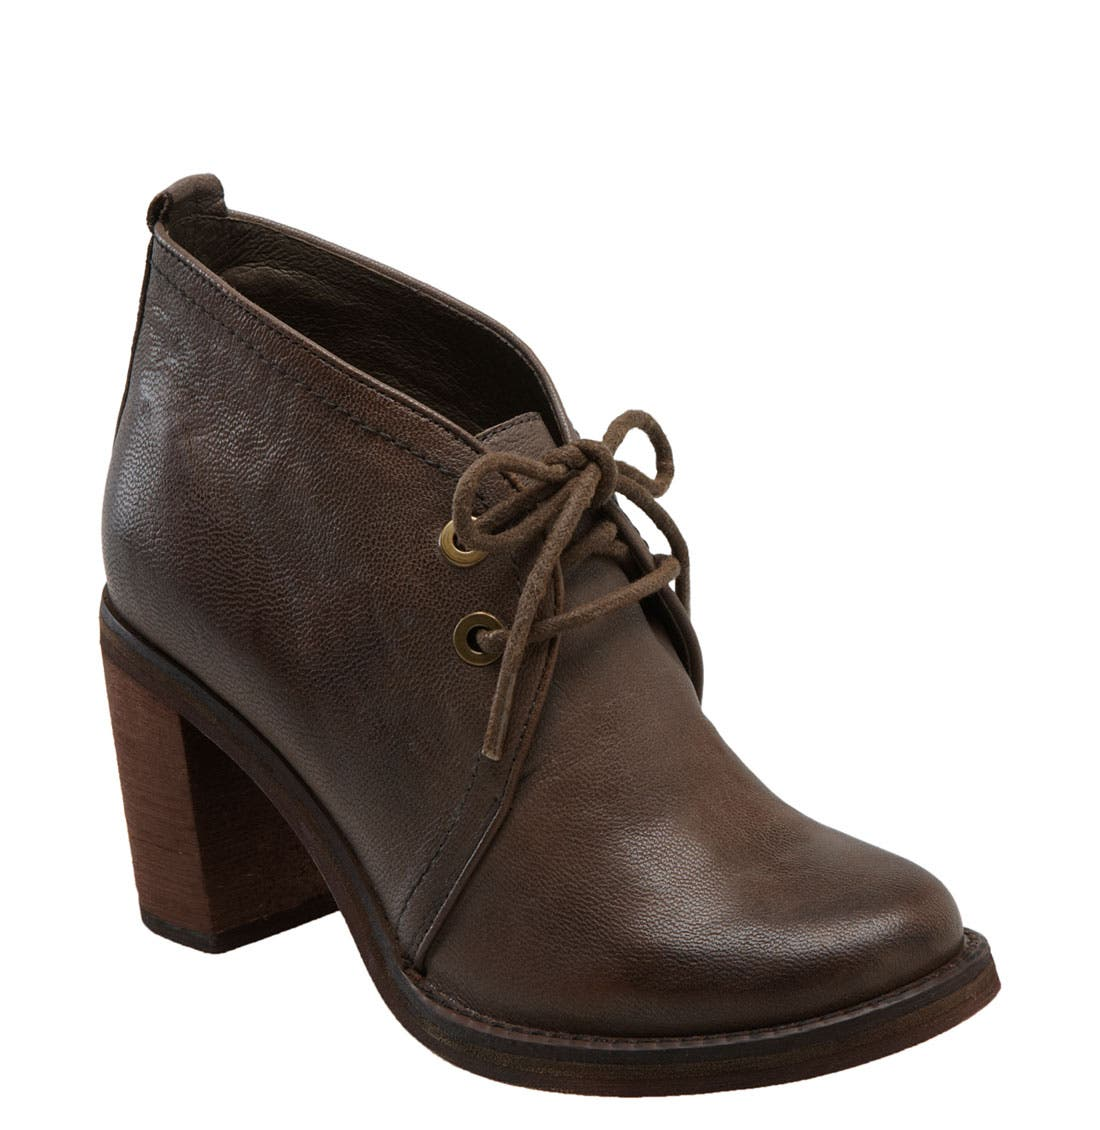 Main Image - Jeffrey Campbell 'Boxxy' Bootie